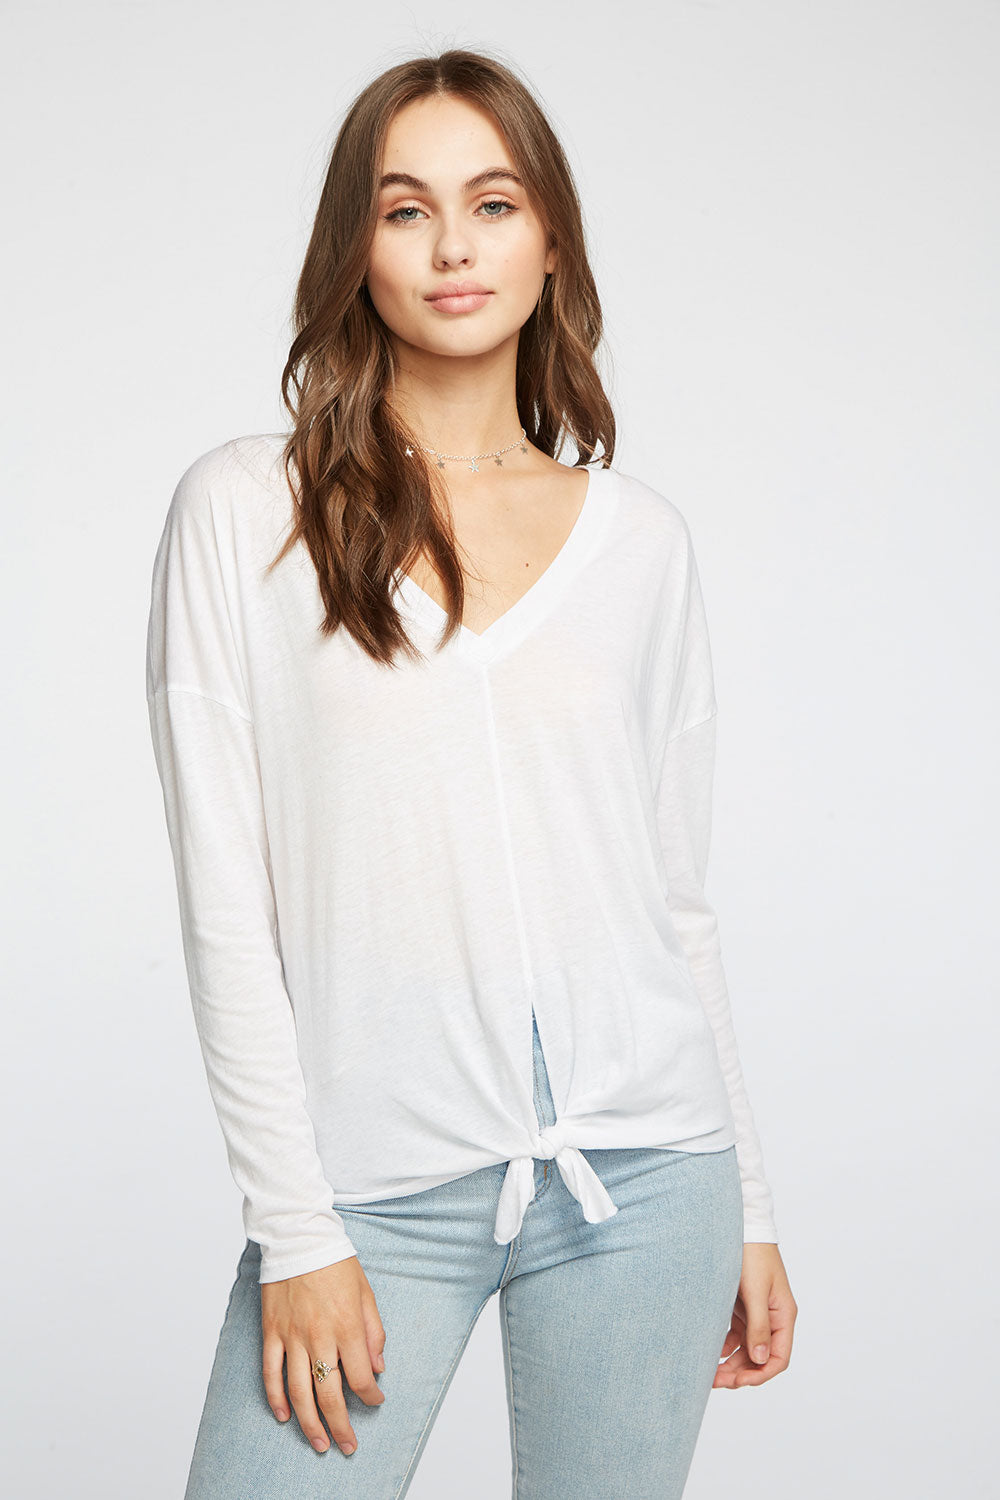 Vintage Jersey Drop Shoulder Tie Front V-Neck Boxy Tee WOMENS chaserbrand4.myshopify.com